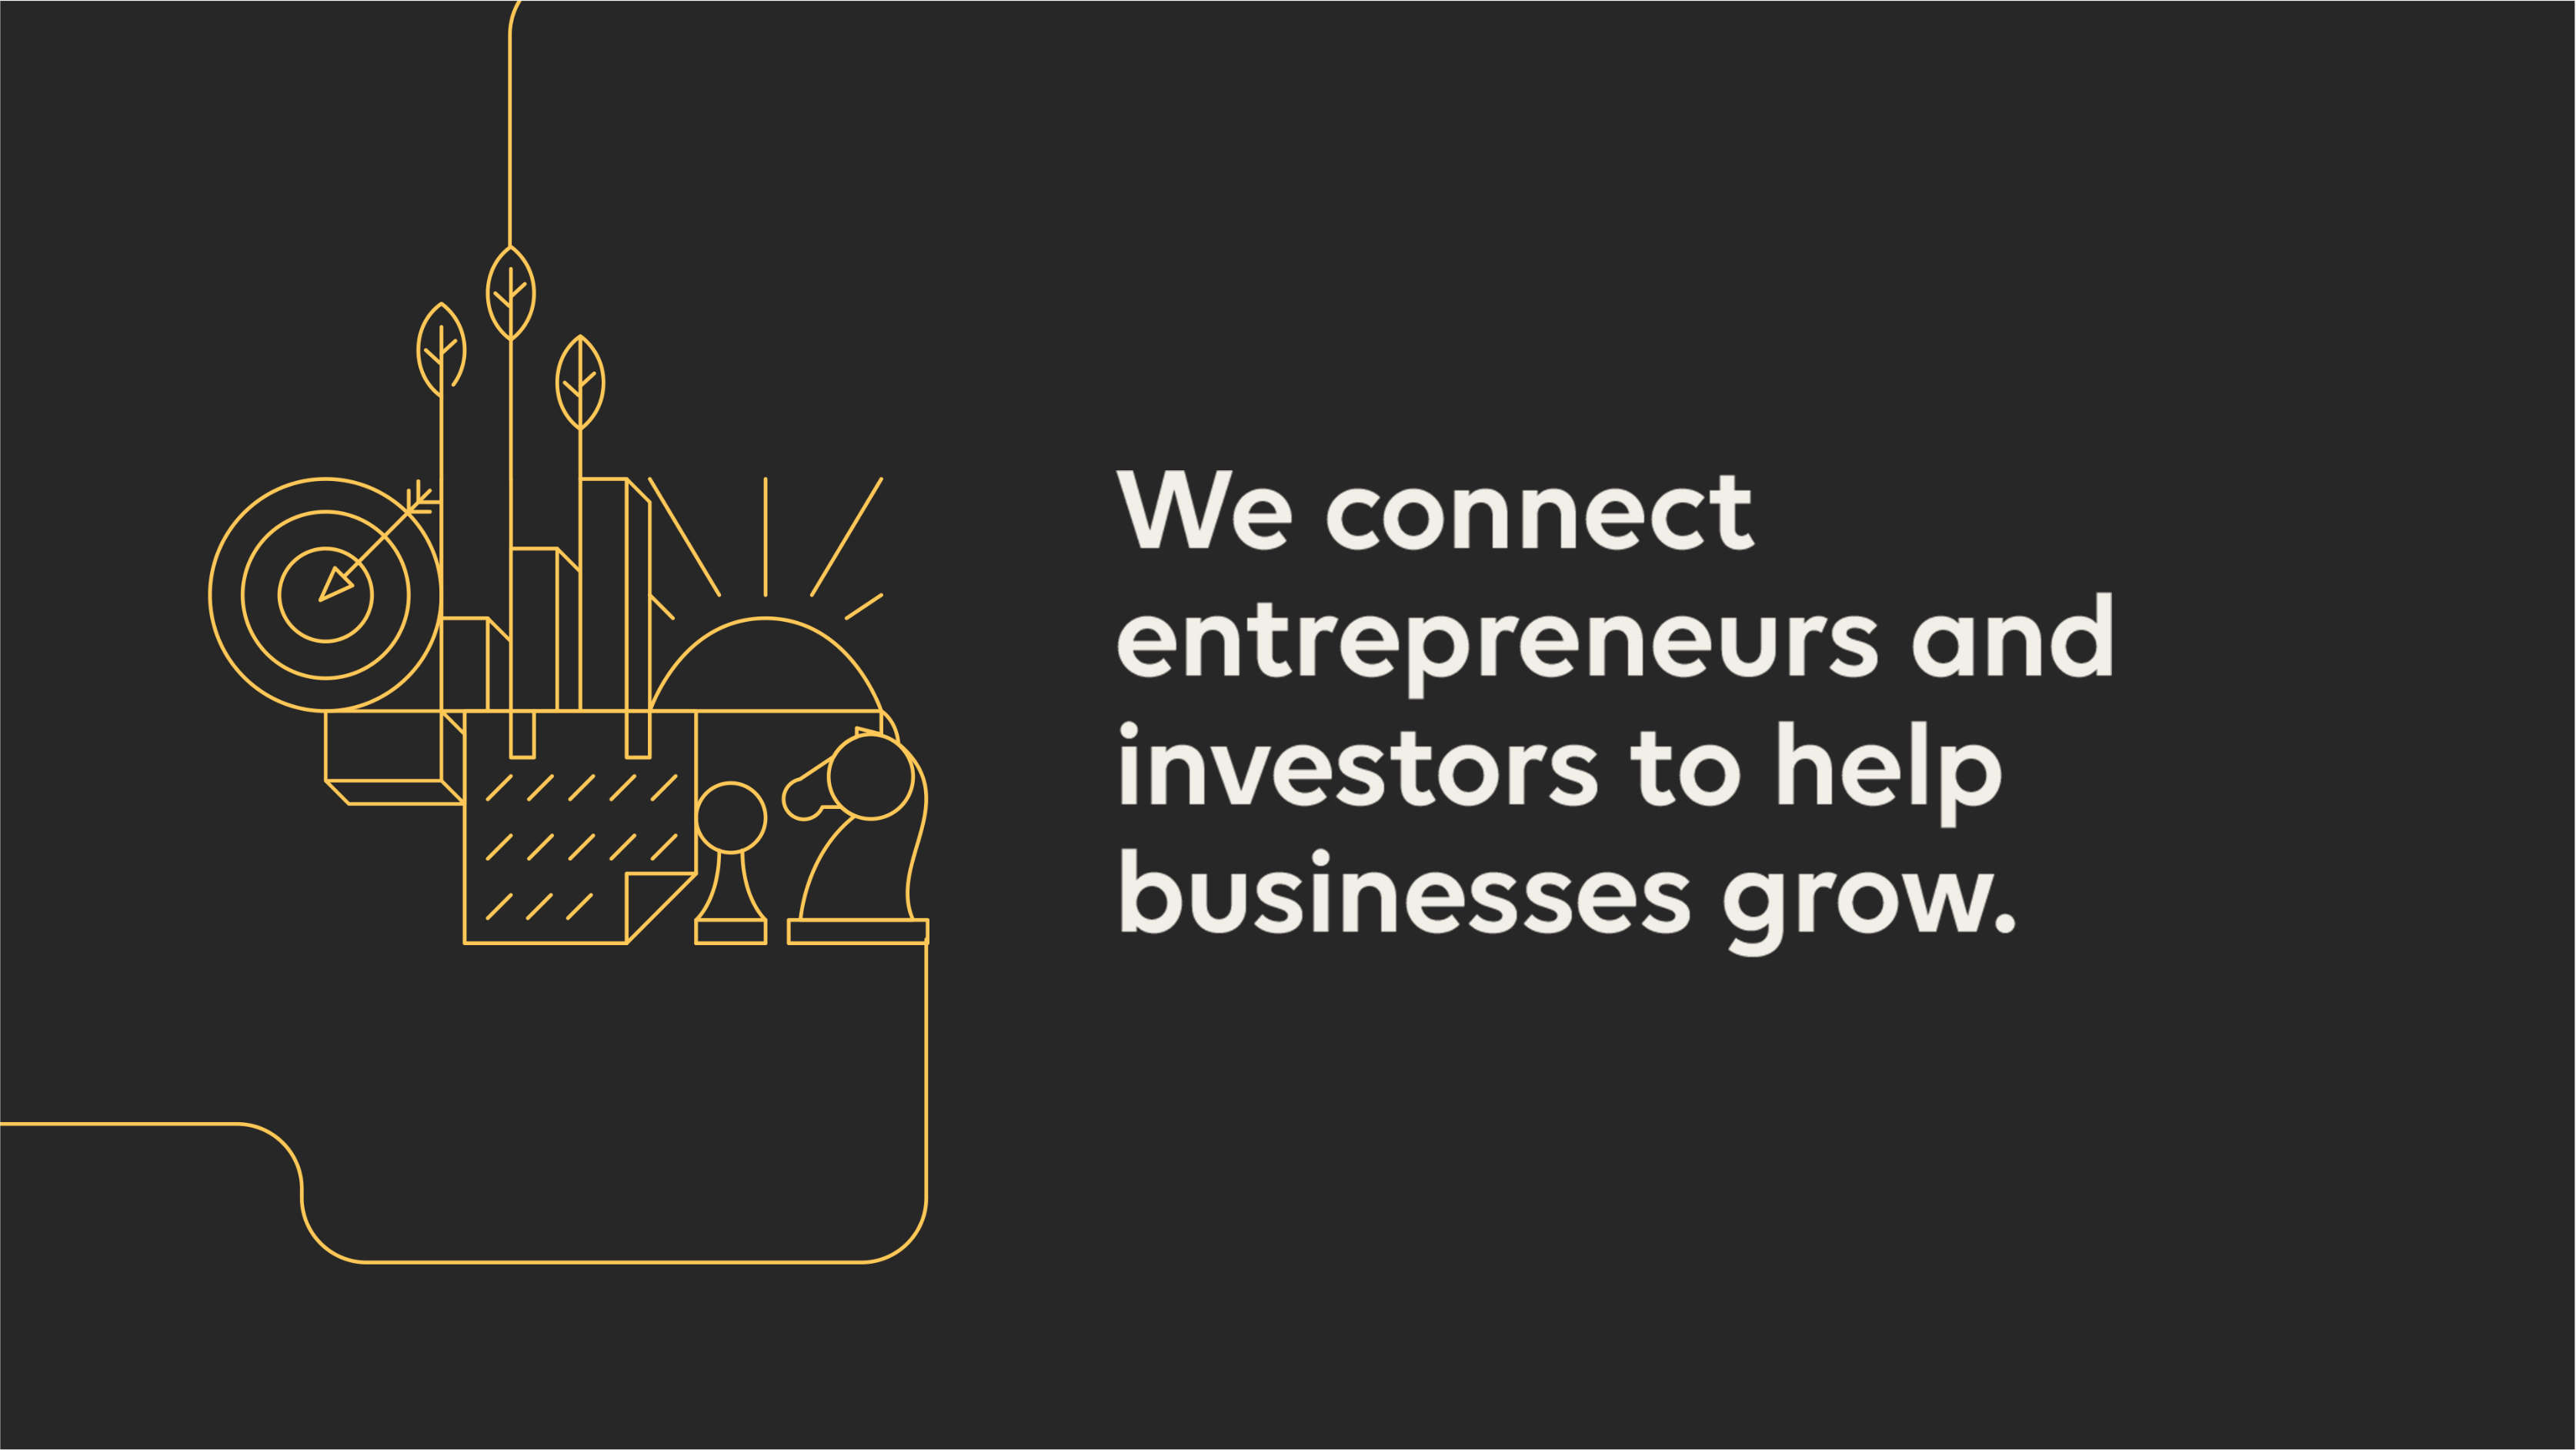 Headline saying We connect entrepreneurs and investors to help businesses grow.